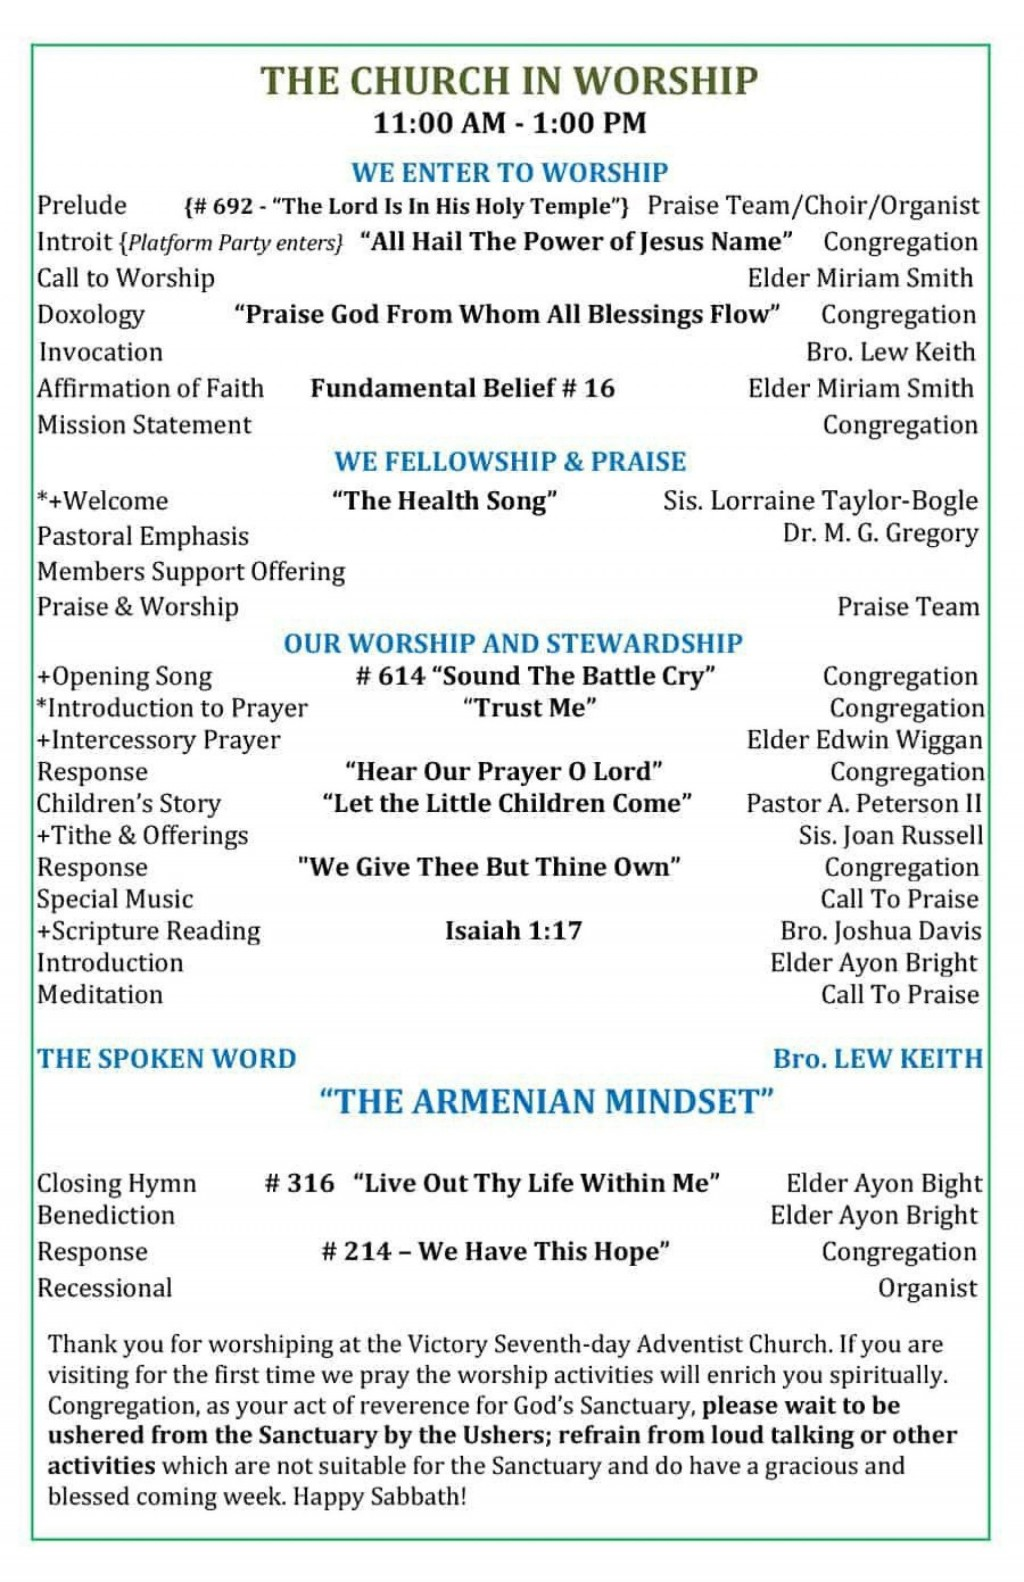 005 Fascinating Free Church Program Template Doc High Resolution Large